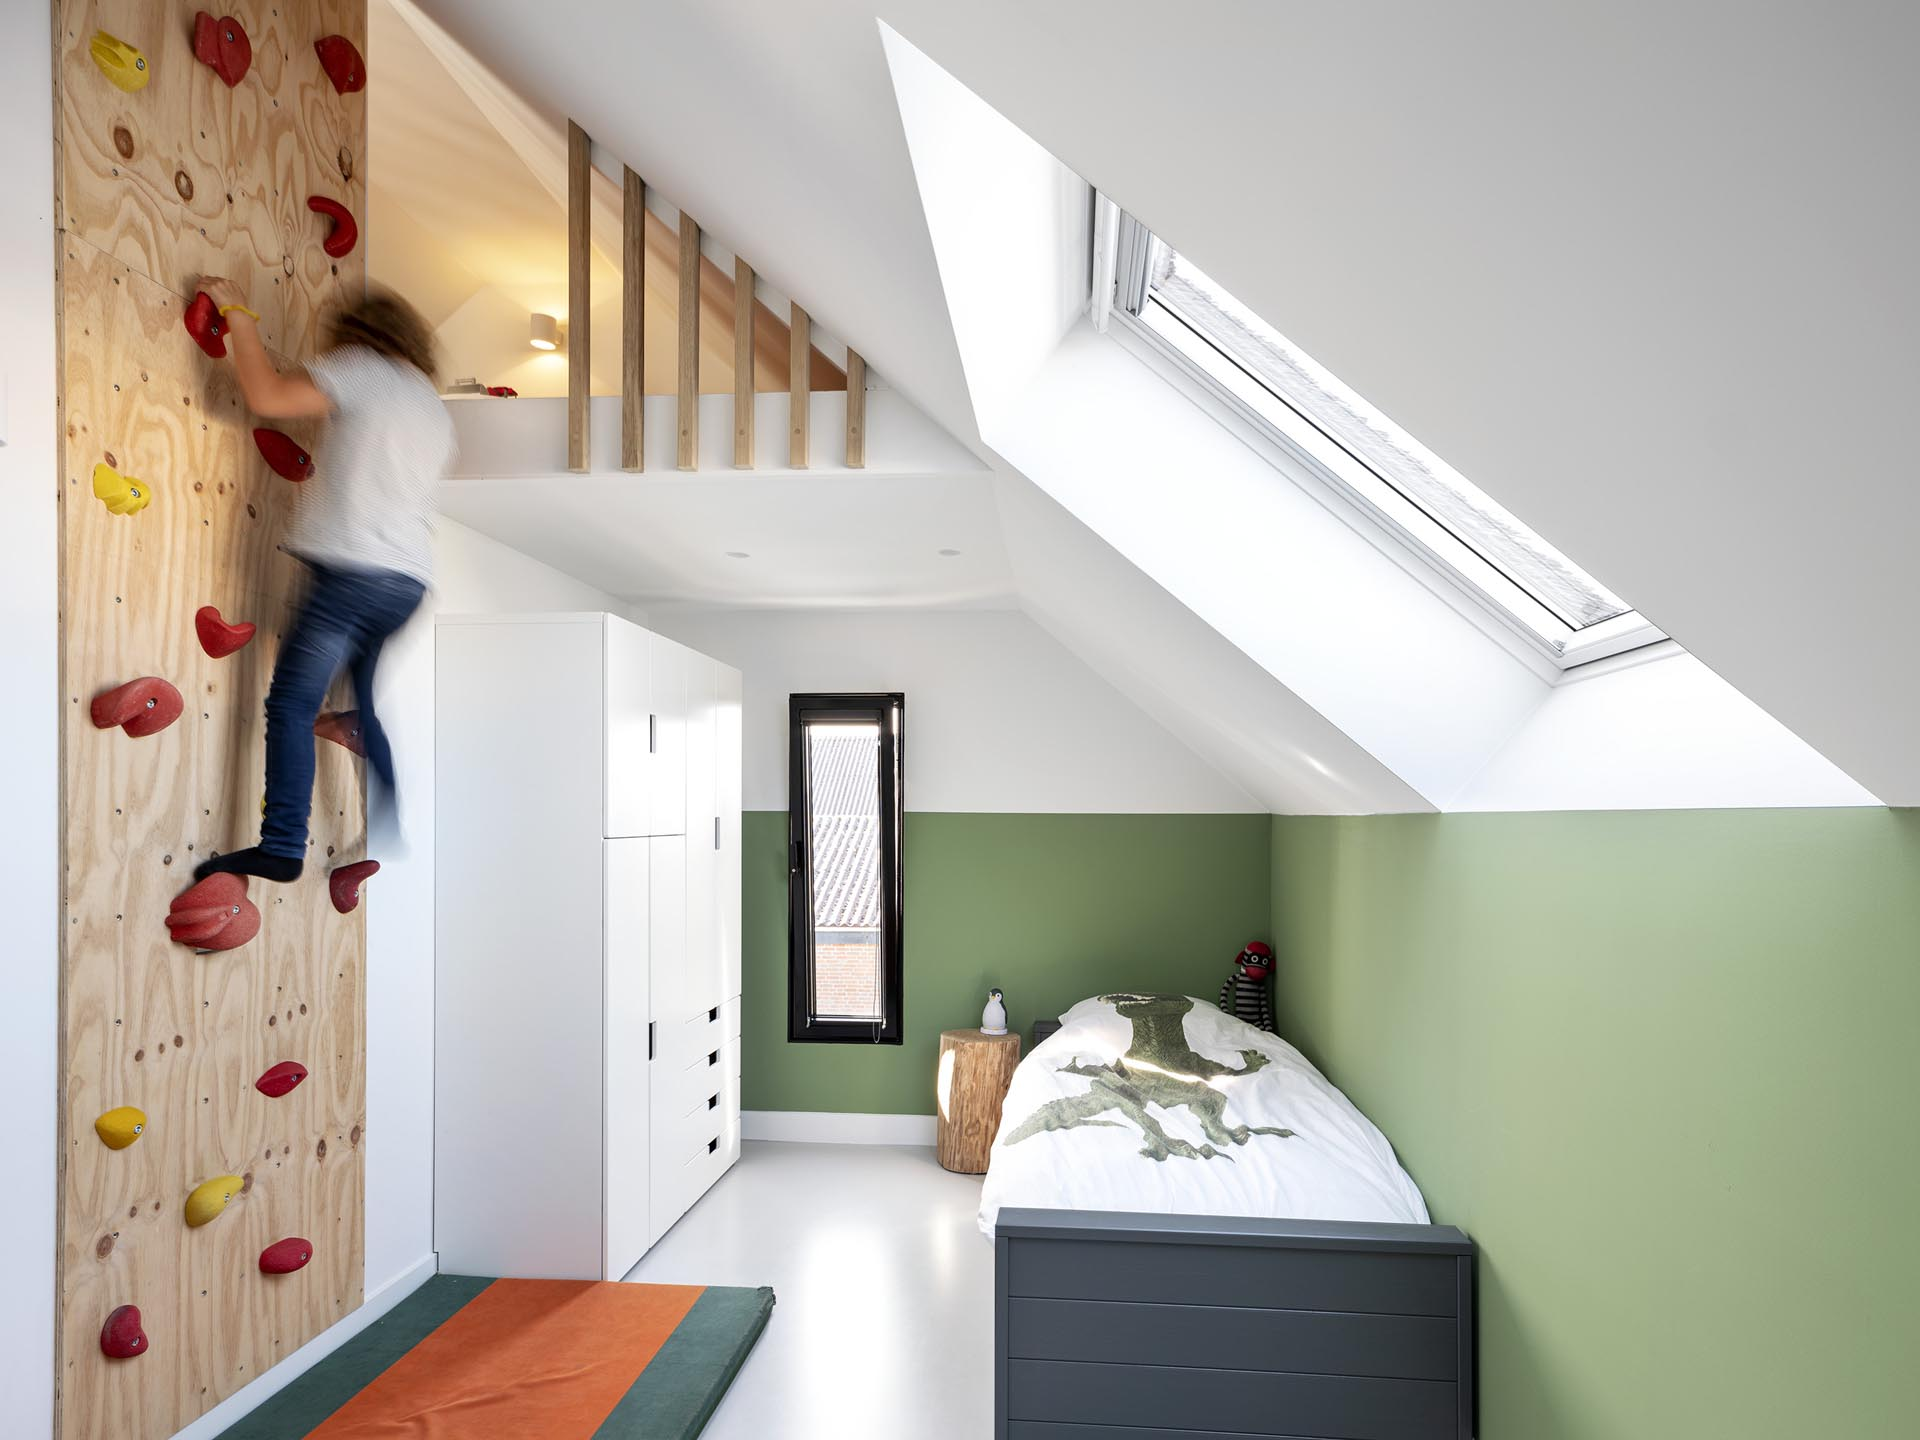 In this modern child's bedroom, there's a rock climbing wall that allows for access to a small lofted area.